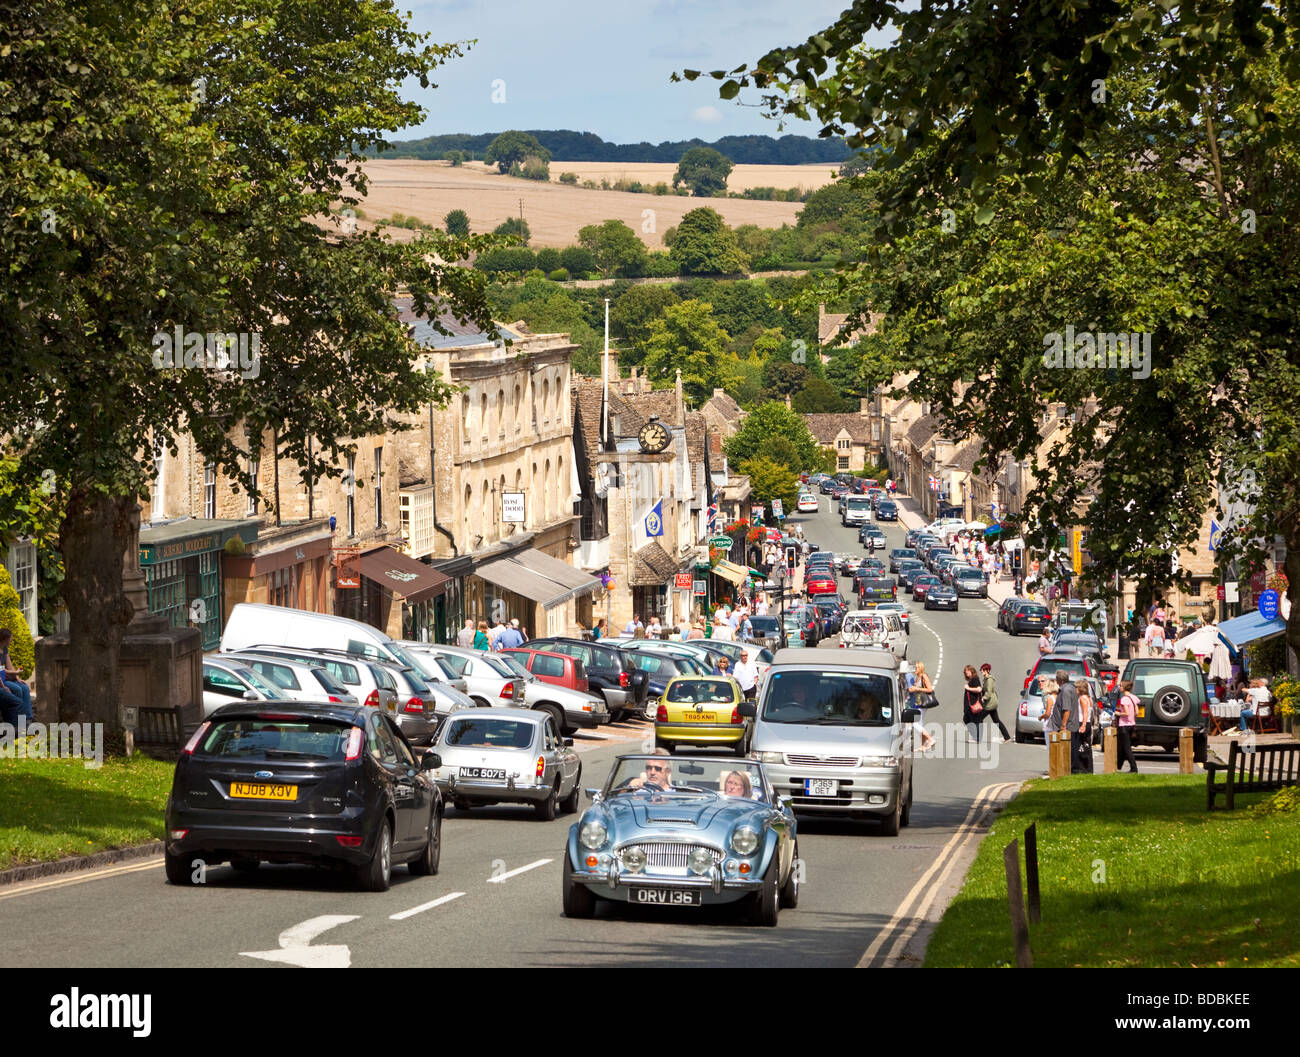 Burford, Oxfordshire, England, UK - a famous Cotswolds village - Stock Image